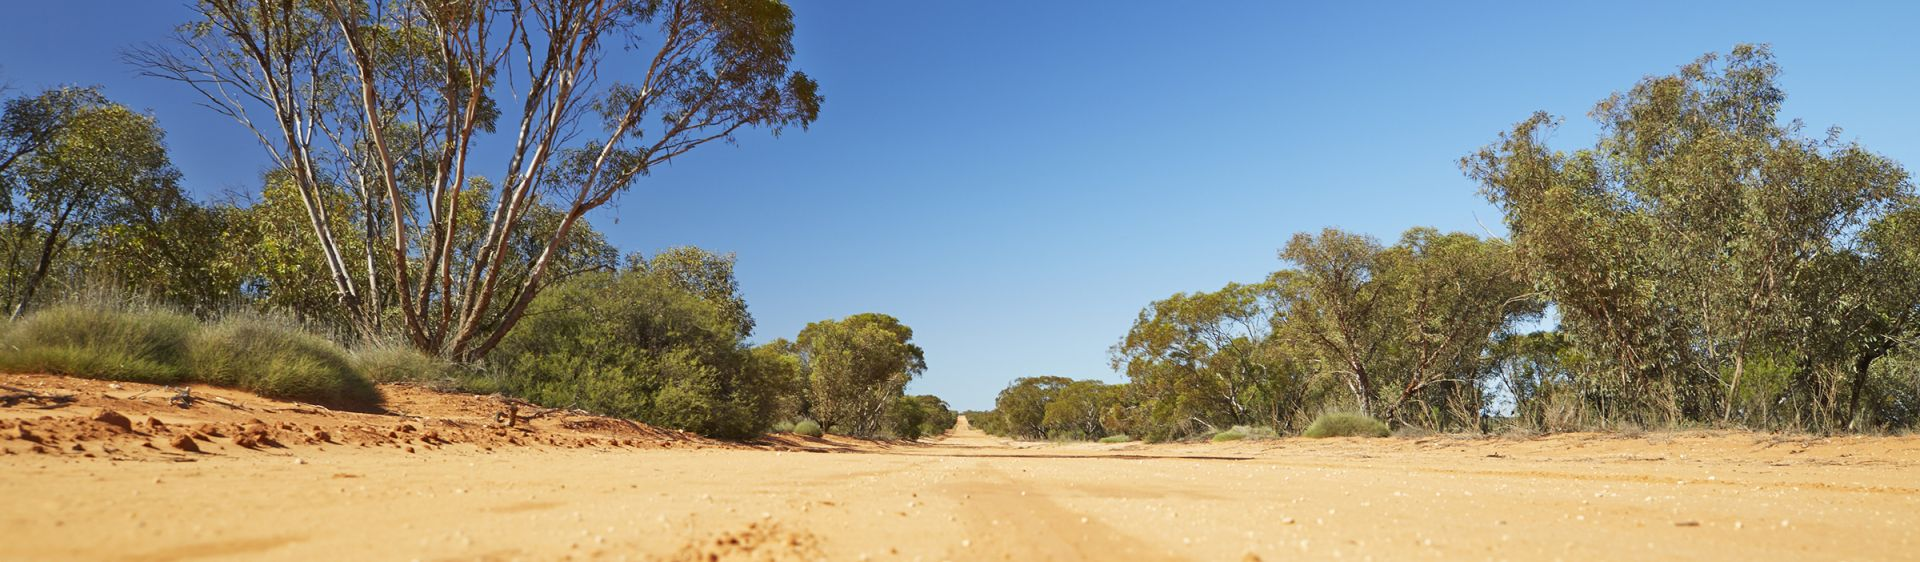 Mungo National Park - Outback NSW